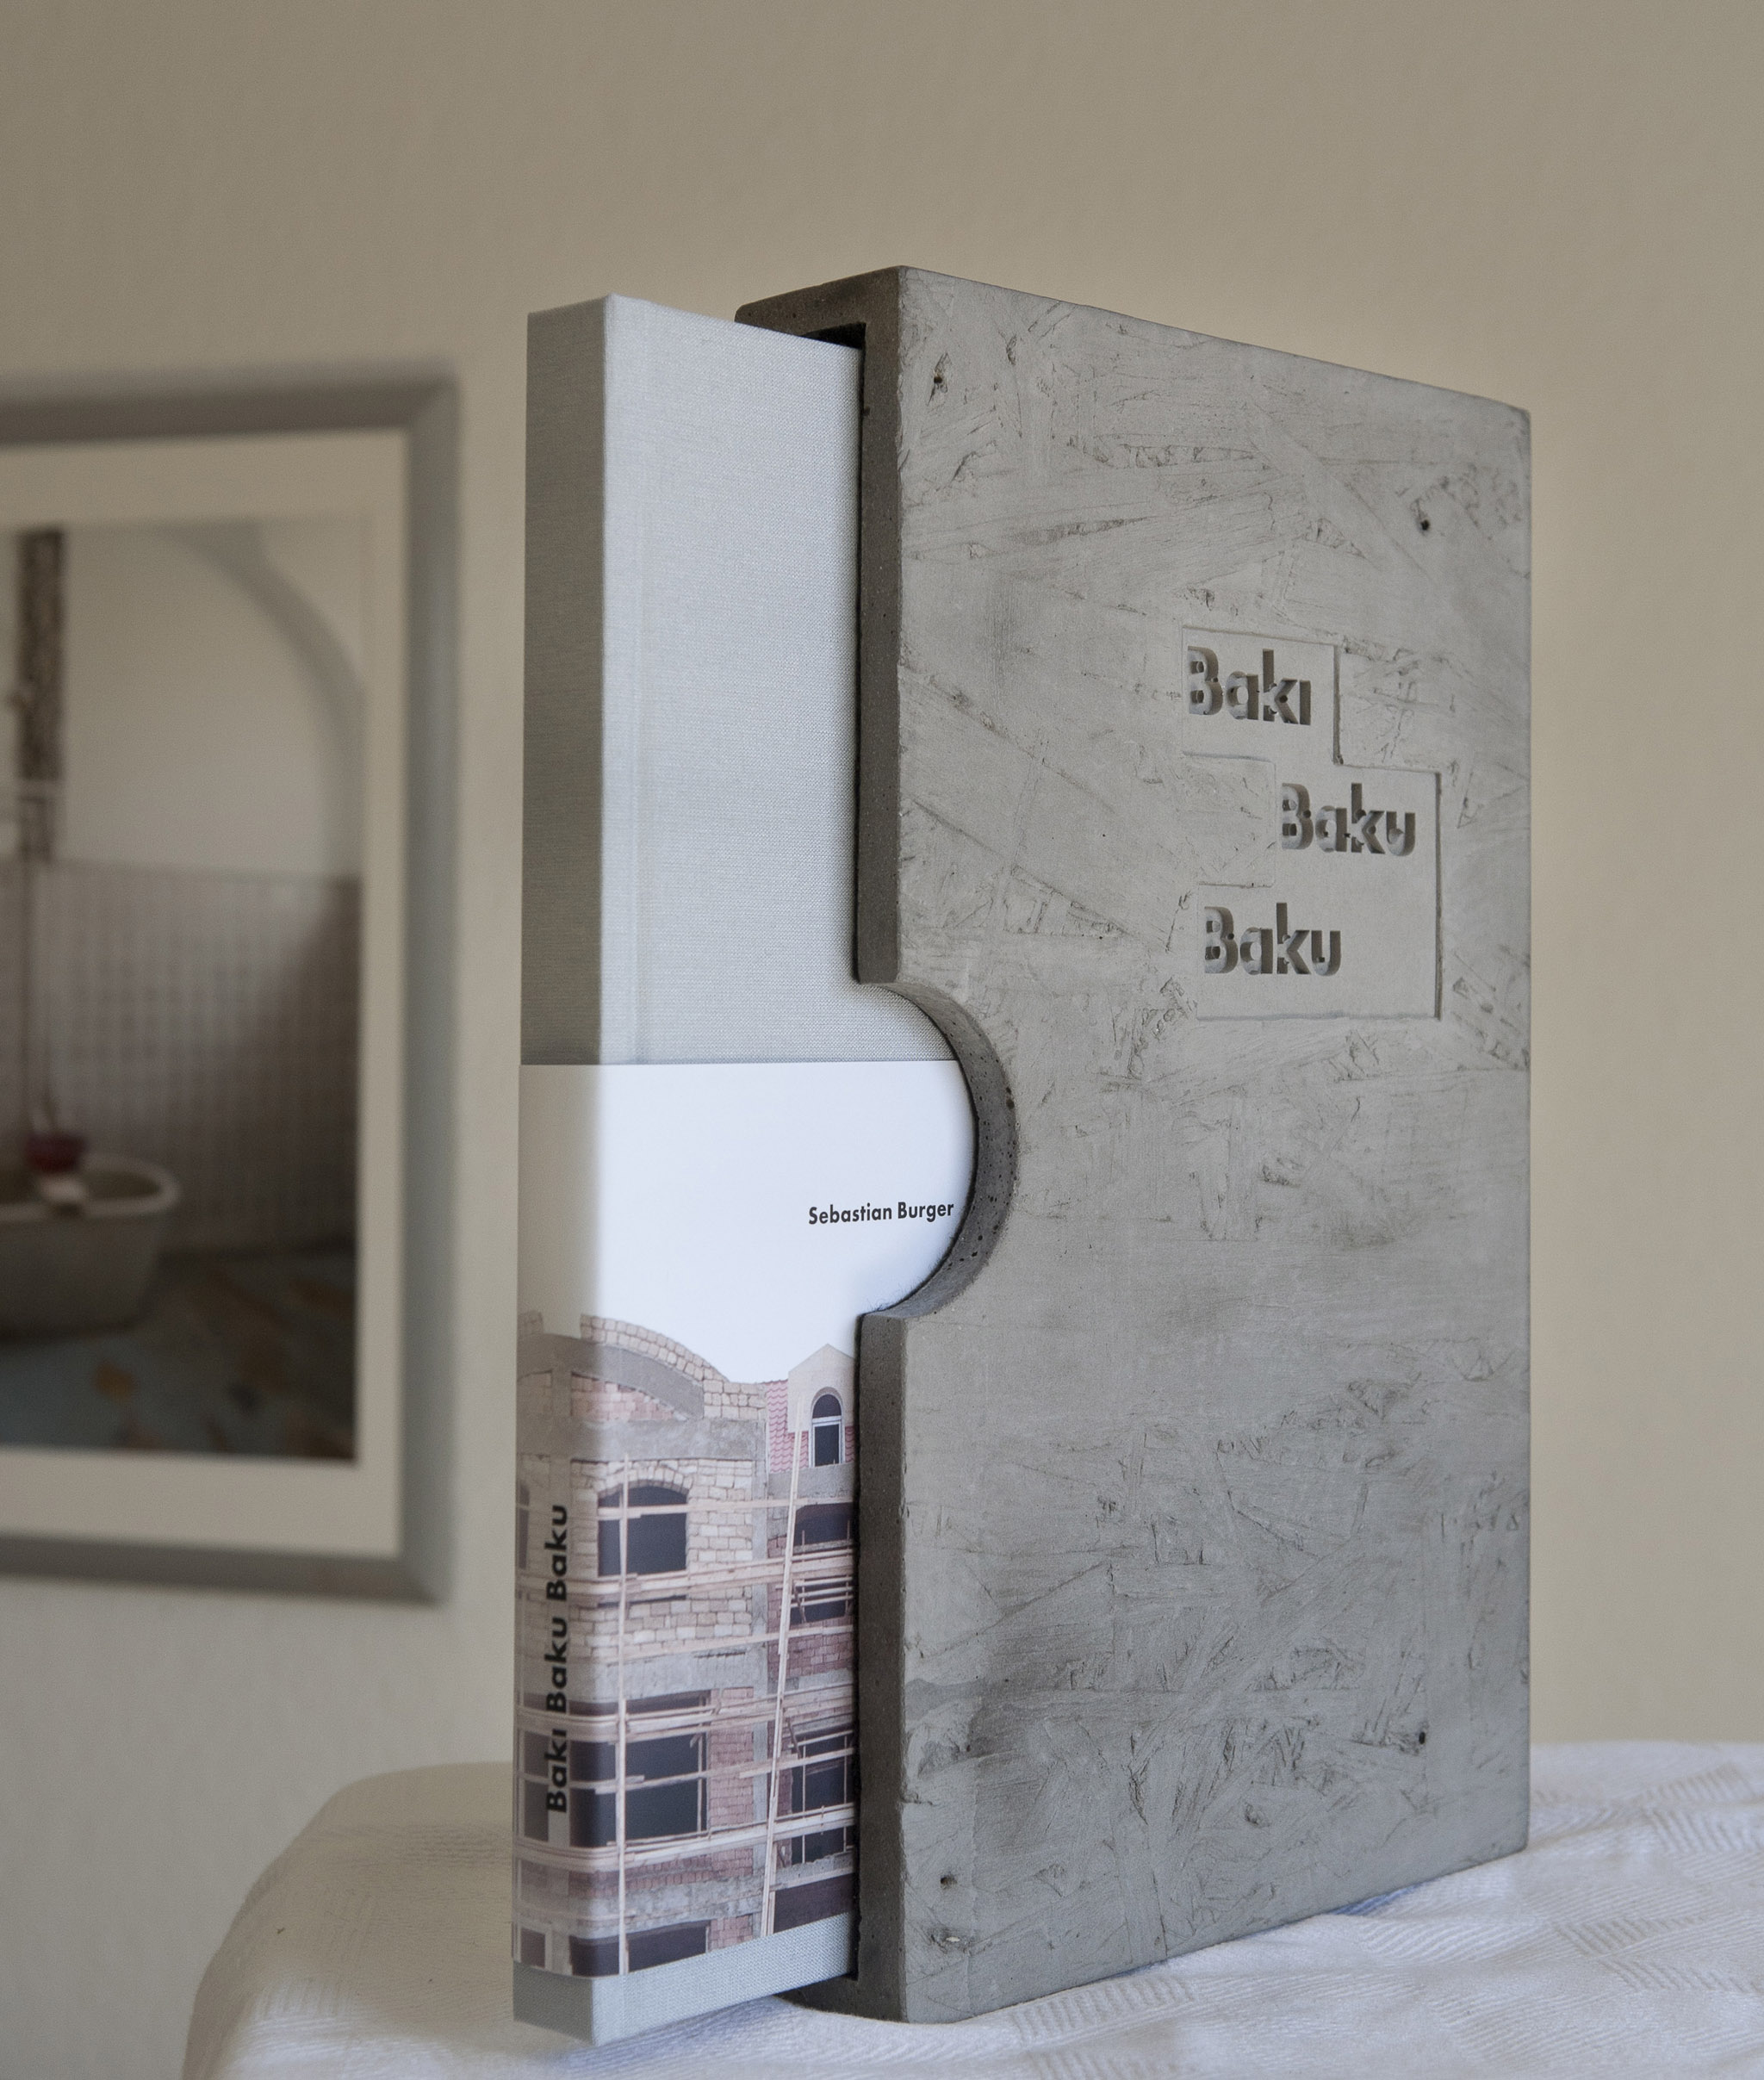 Eine art edition: Buch + hand gefertigter Beton-Schuber / art edition consisting of a book + hand made concrete slipcase